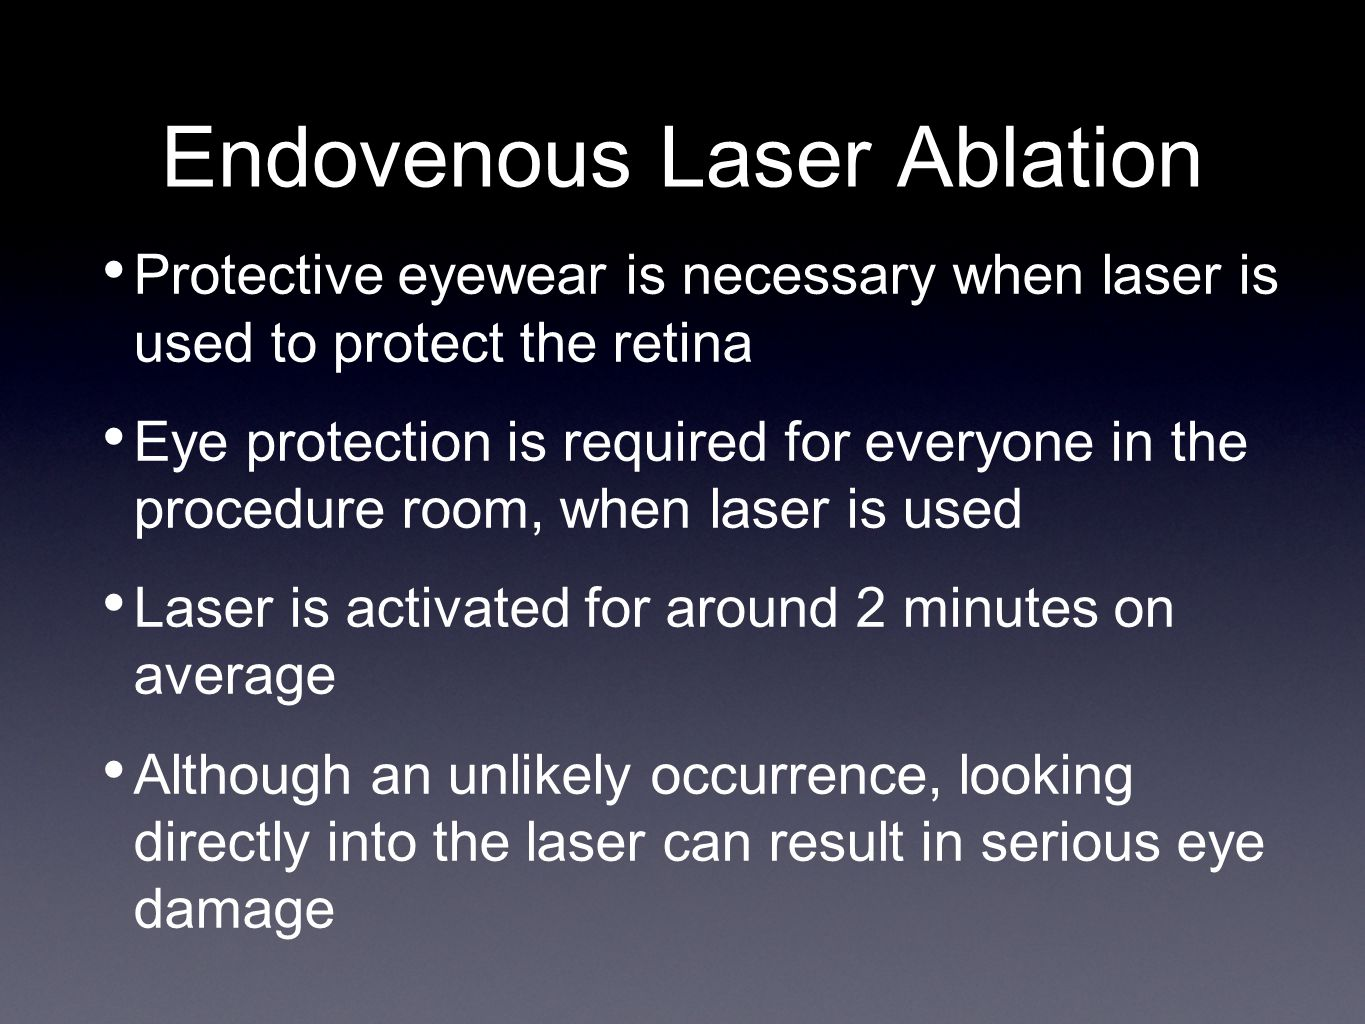 Endovenous Laser Ablation Protective eyewear is necessary when laser is used to protect the retina Eye protection is required for everyone in the procedure room, when laser is used Laser is activated for around 2 minutes on average Although an unlikely occurrence, looking directly into the laser can result in serious eye damage